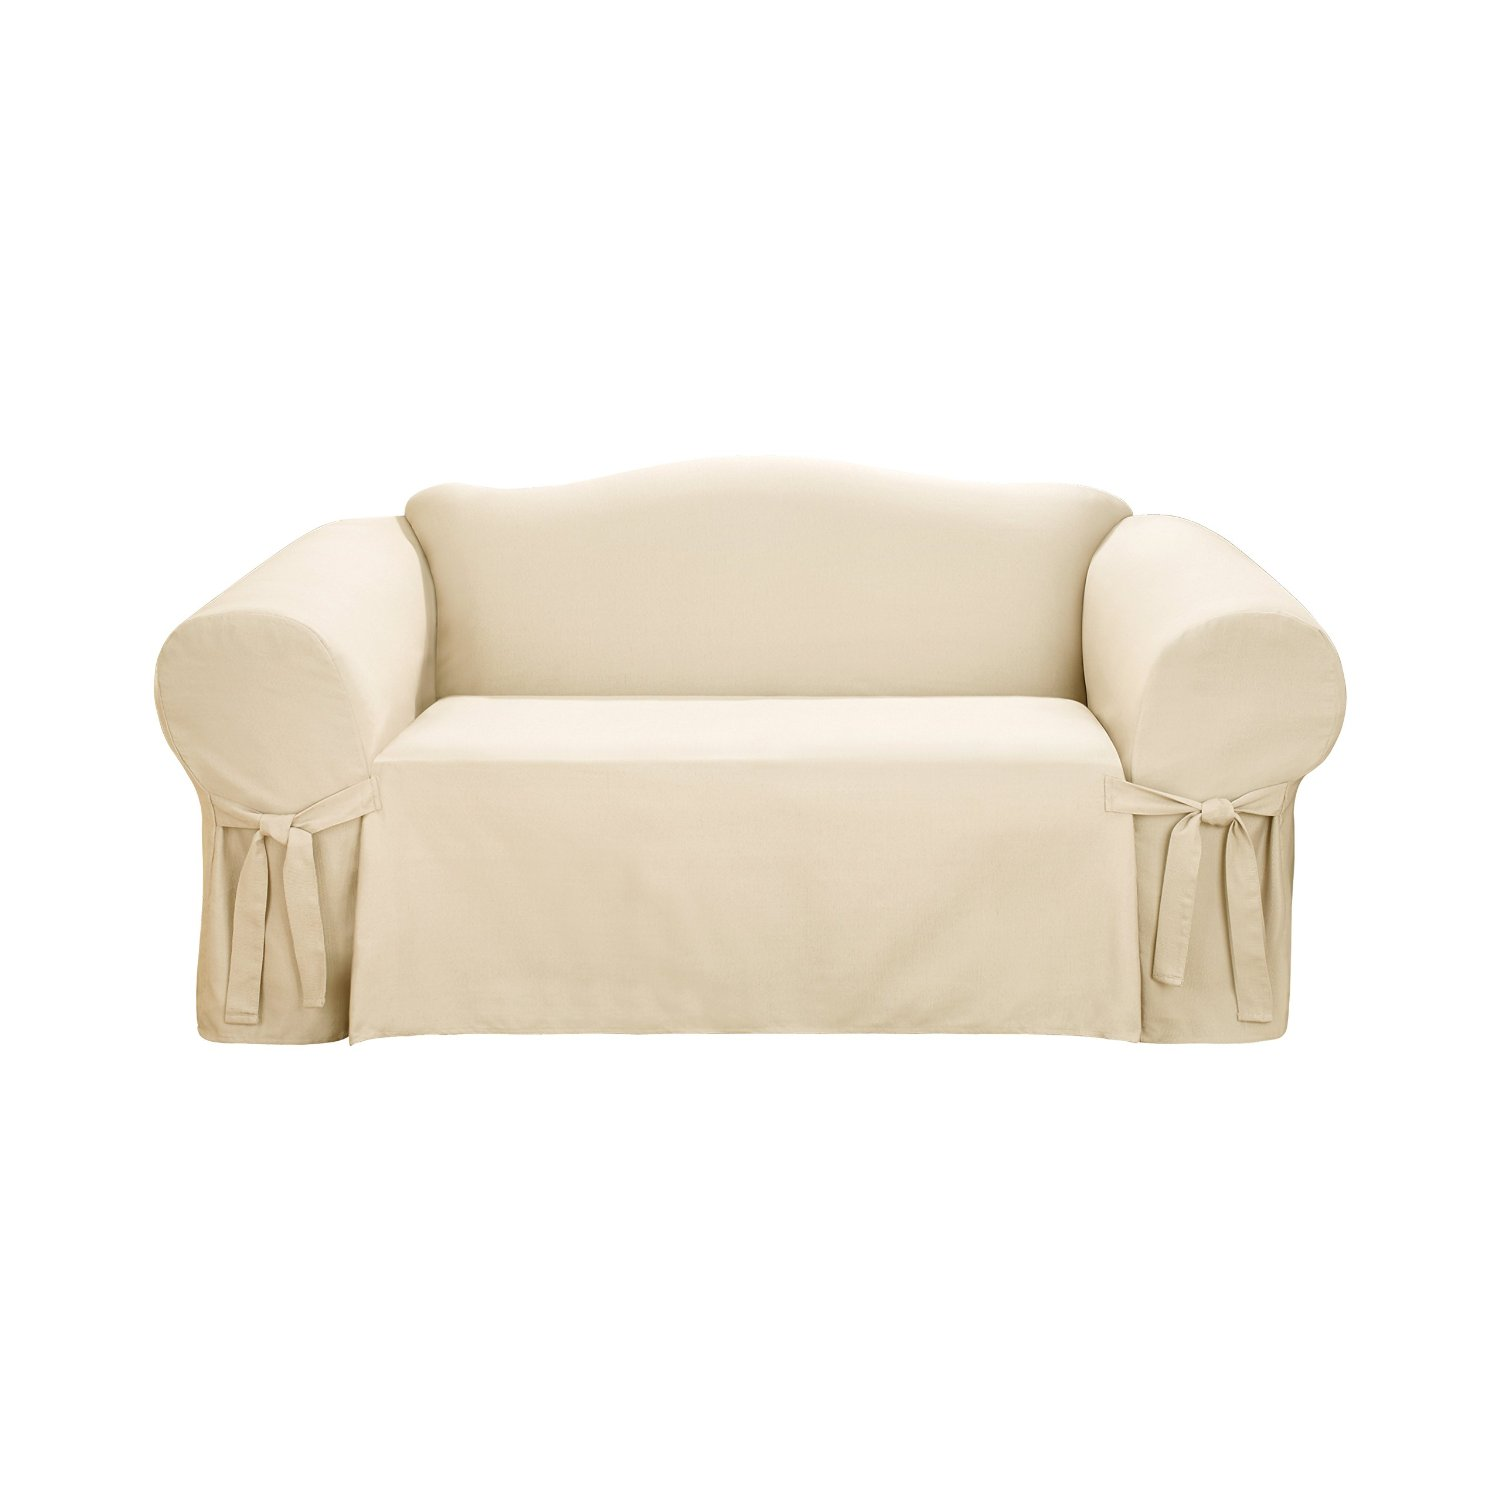 charming white surefit cover for chic sofa ideas